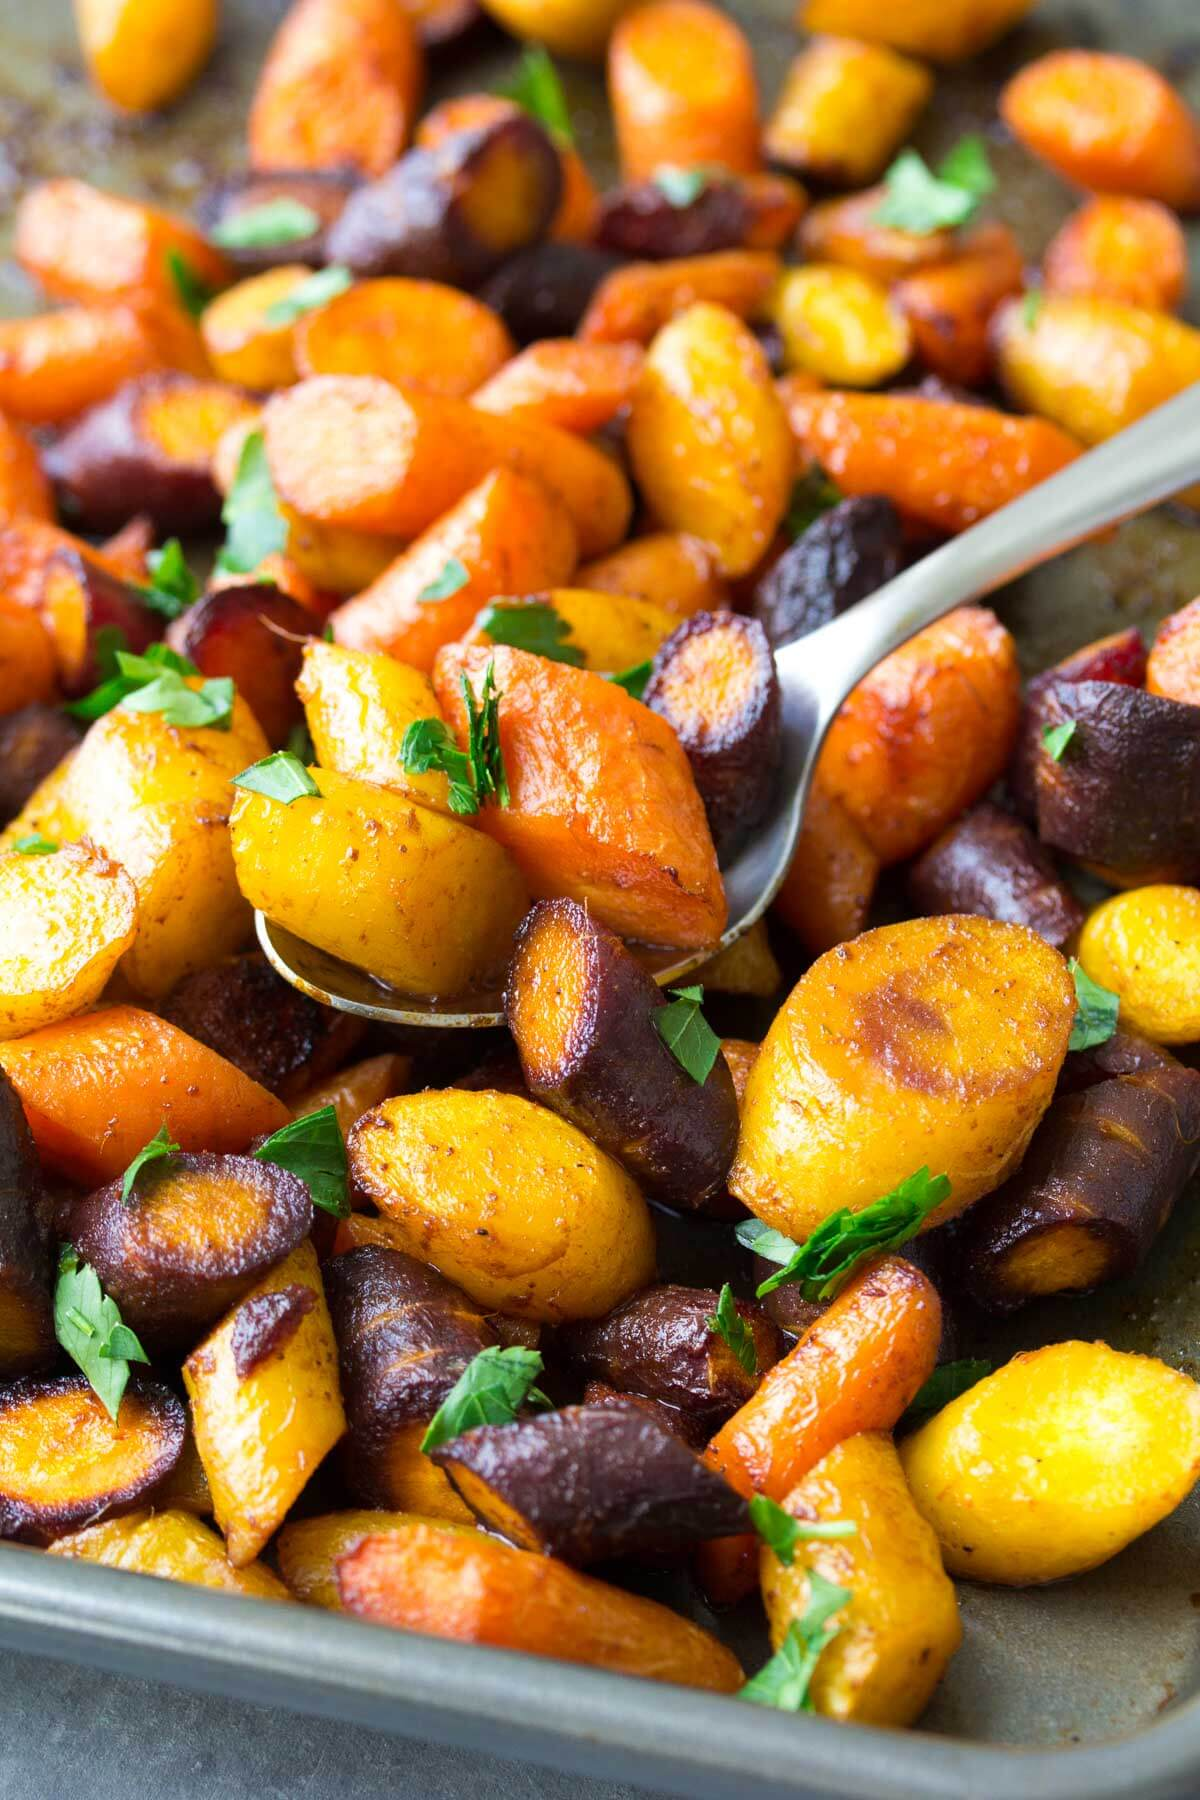 carrots roasted in the oven